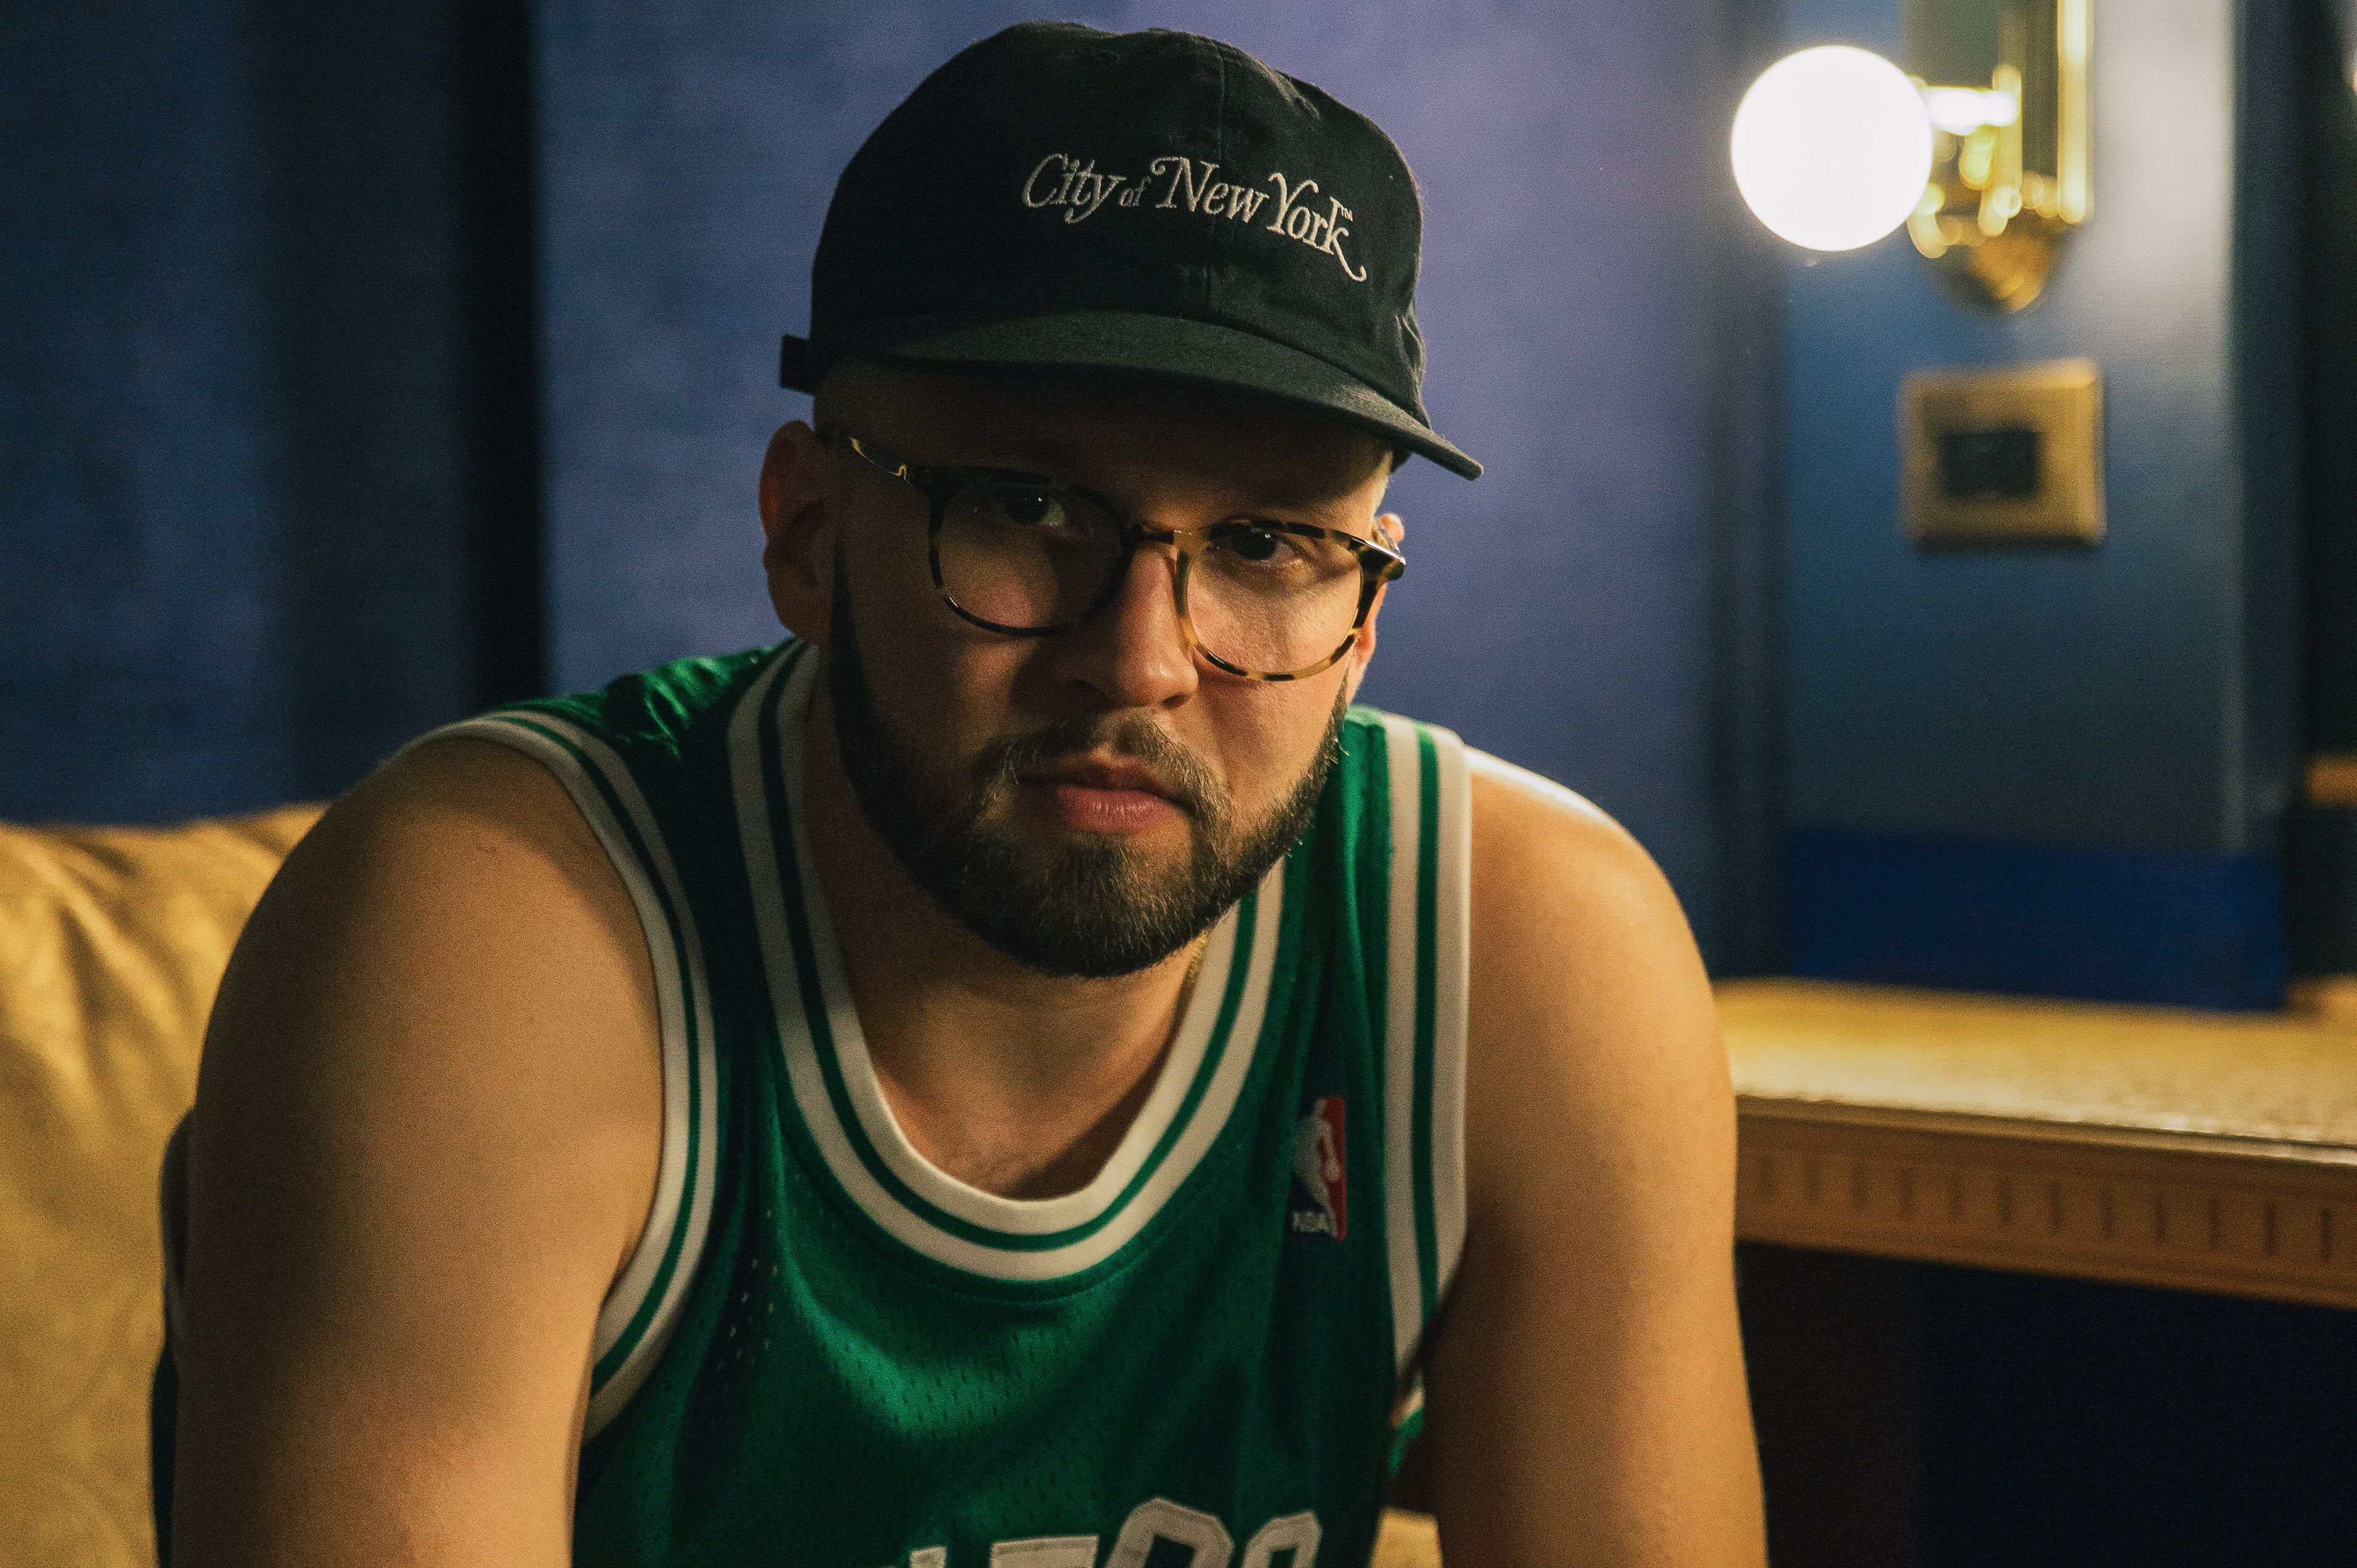 Andy Mineo posing for a promotional photo.